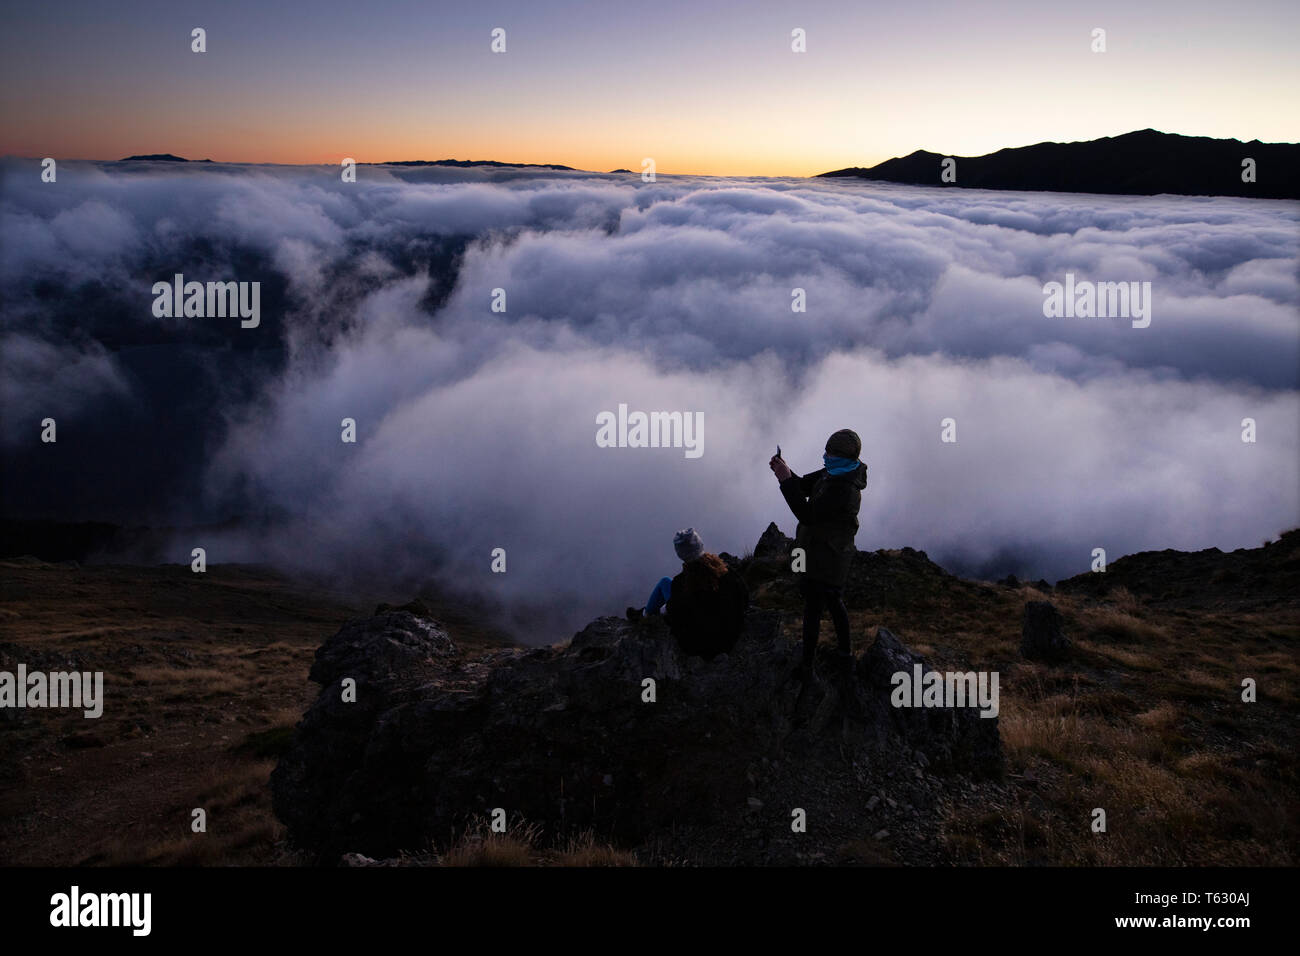 Picture by Tim Cuff - 23/24 March 2018 - Tramping on Mount Roberts, Nelson, New Zealand - Stock Image